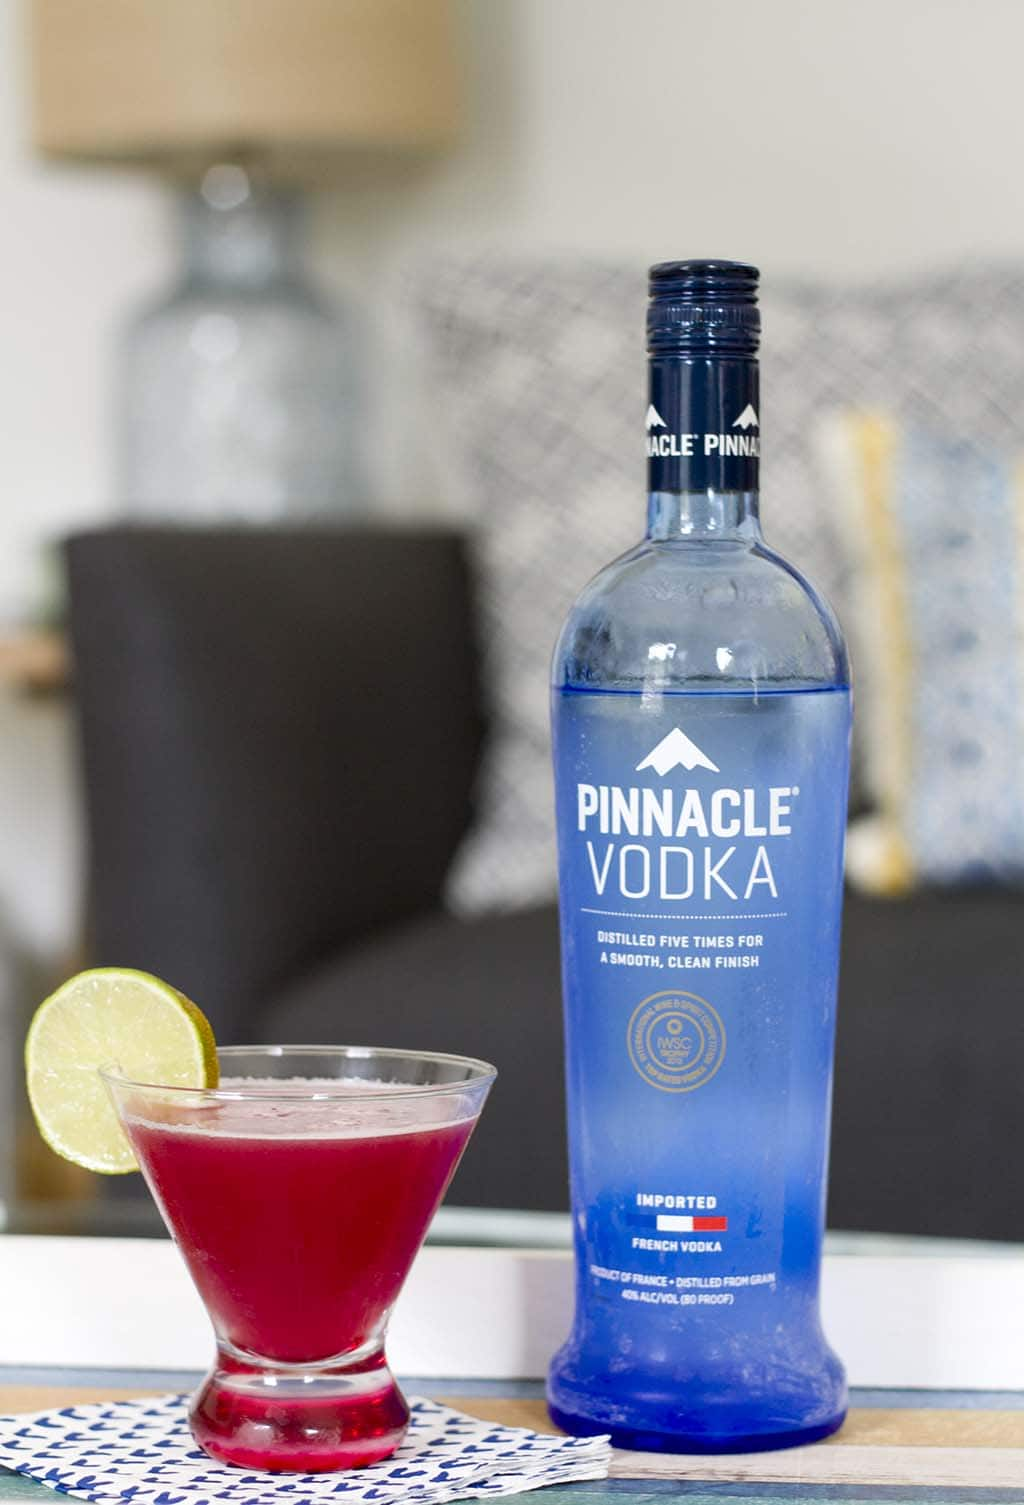 blue bottle of Pinnacle vodka next to red cranberry drink with lime slice on rim on top of white napkin with blue hearts on table in front of blue couch and light blue glass lamp